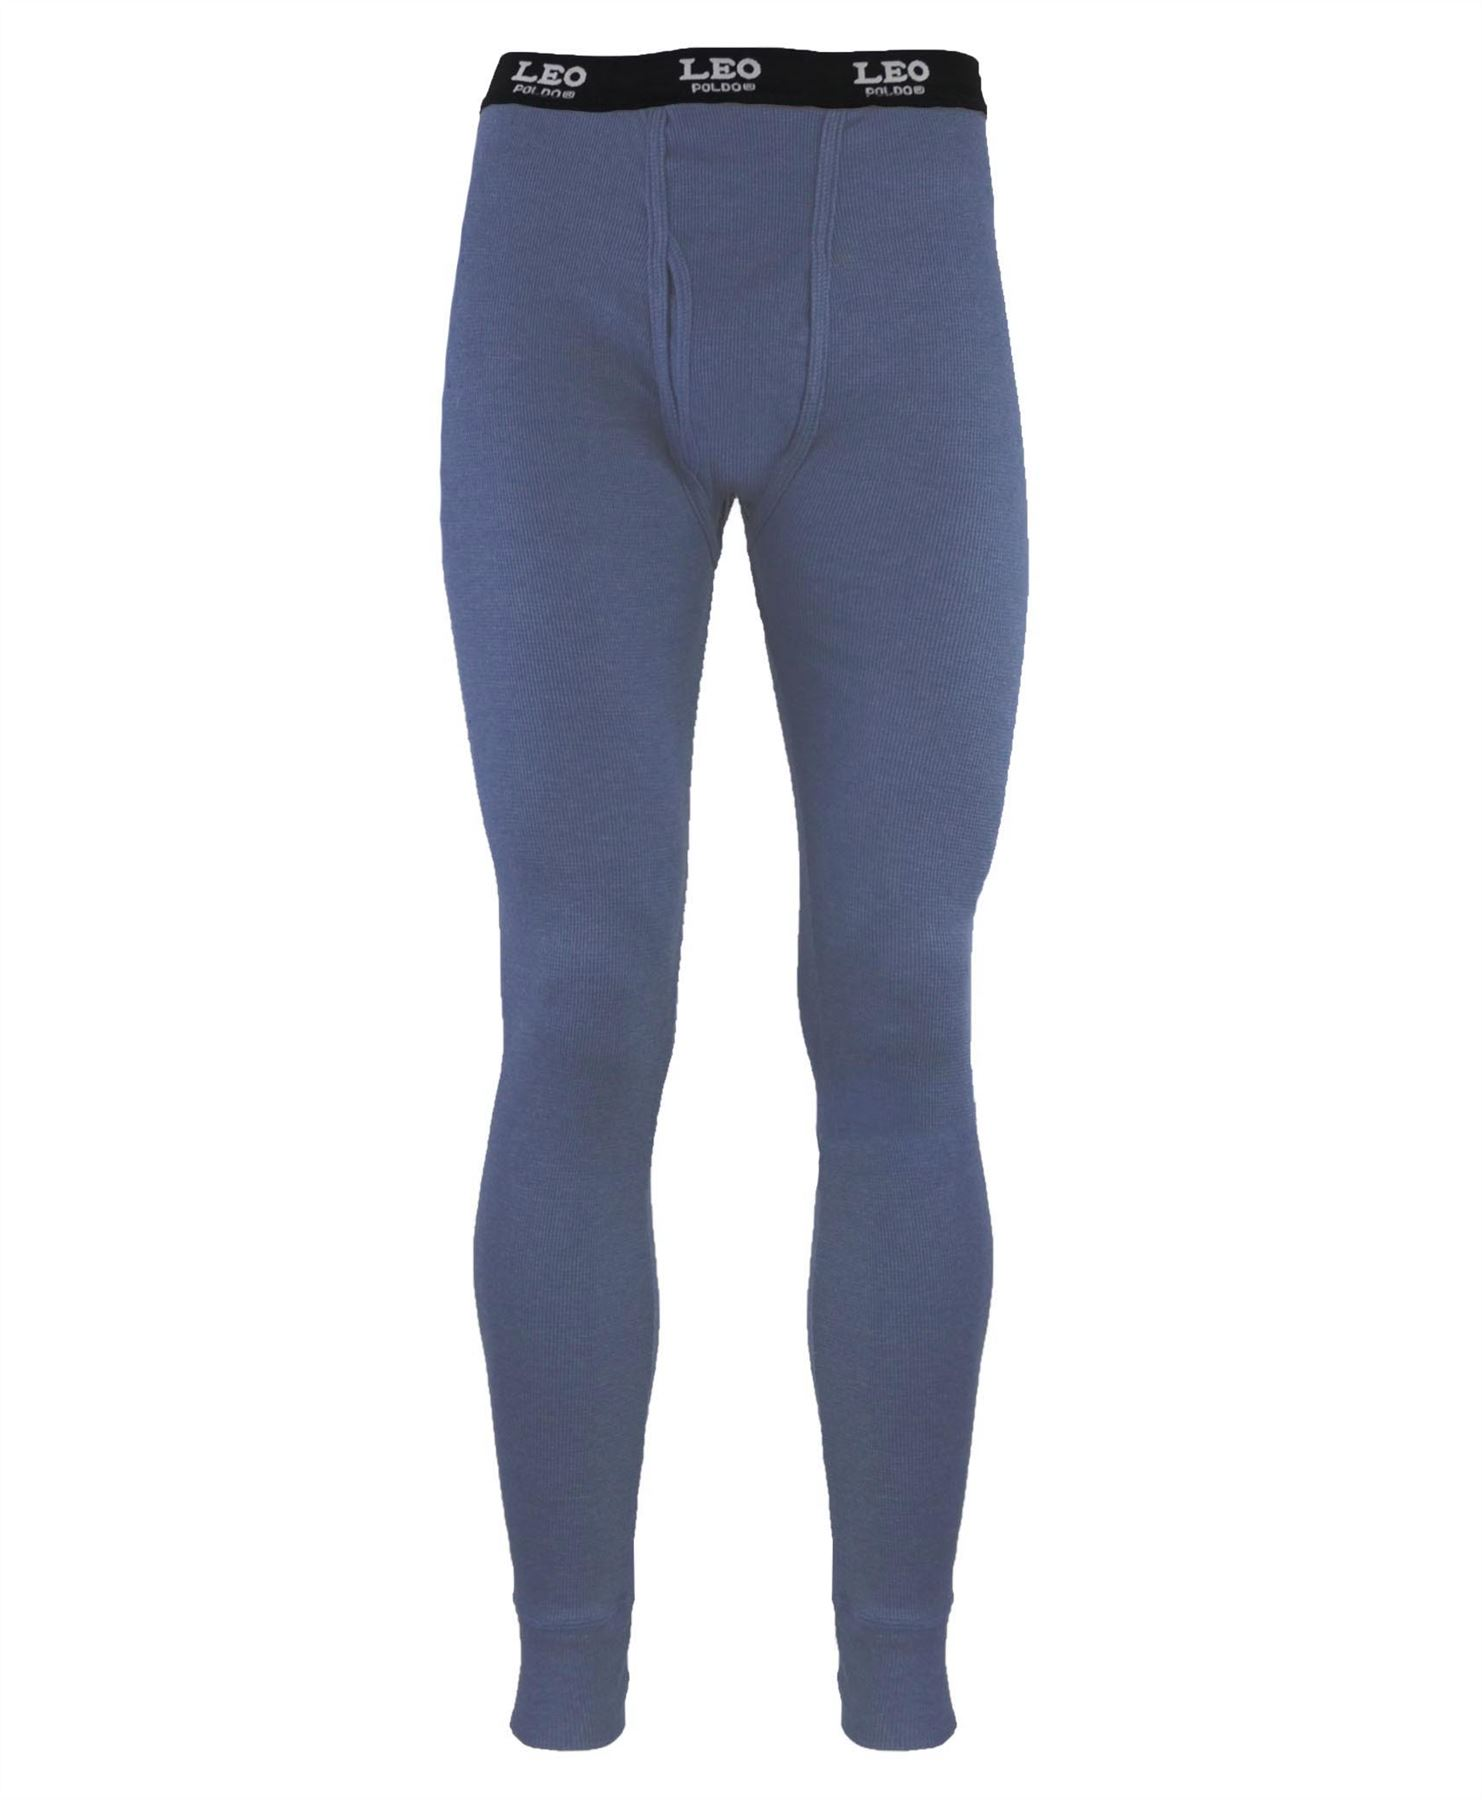 Long underwear used to mean waffle-knit white cotton. It held in moisture, became cold and clammy, heavy and downright unpleasant. There are few innovations as important to enjoying the outdoors as poly-pro long underwear.